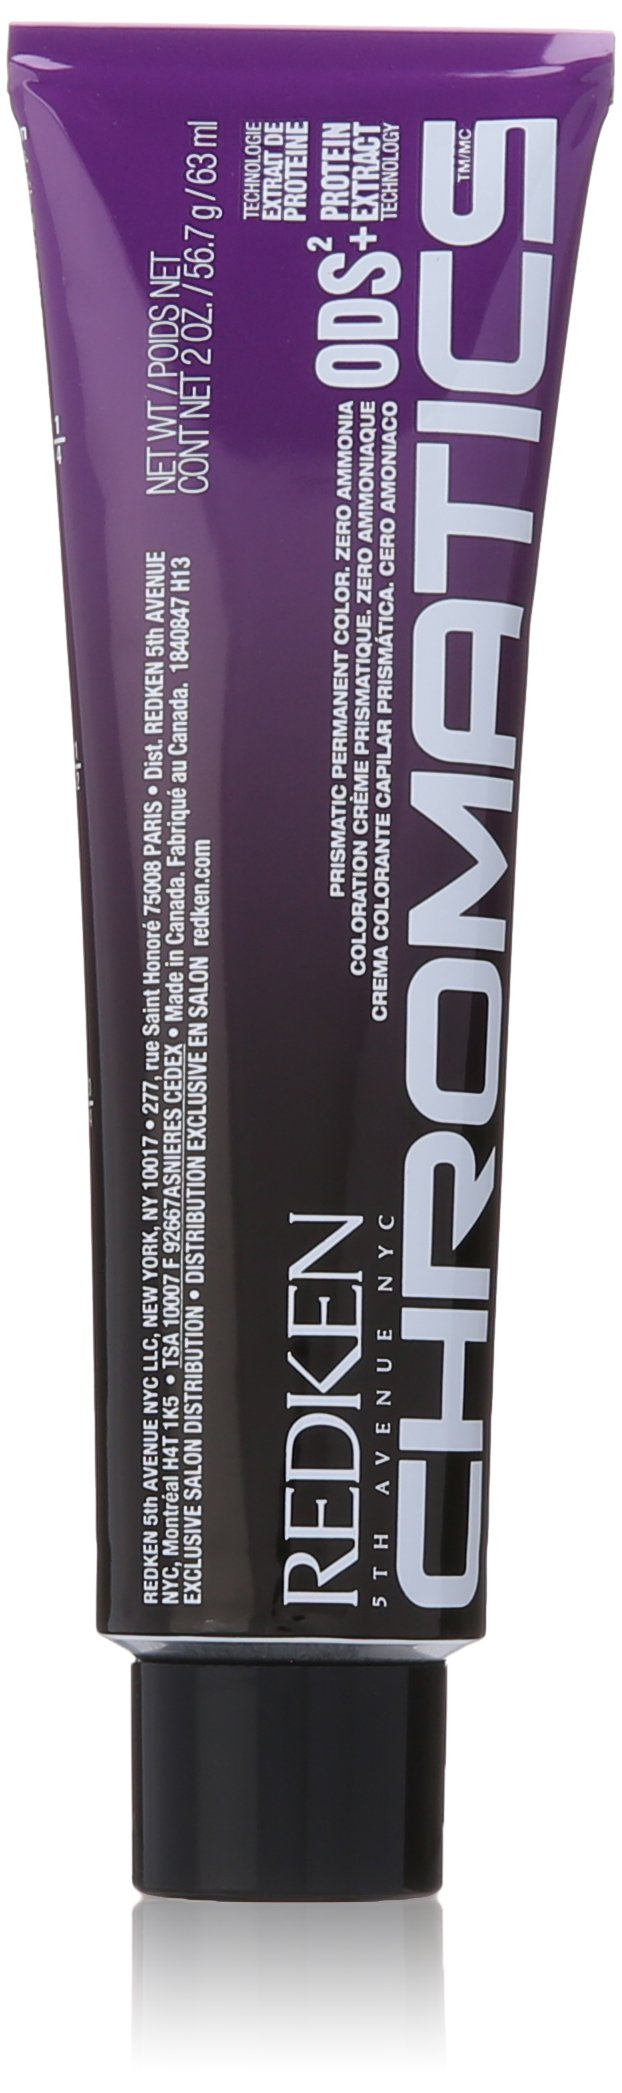 Redken Chromatics Prismatic Hair Color, No.6 Natural, 2 Ounce